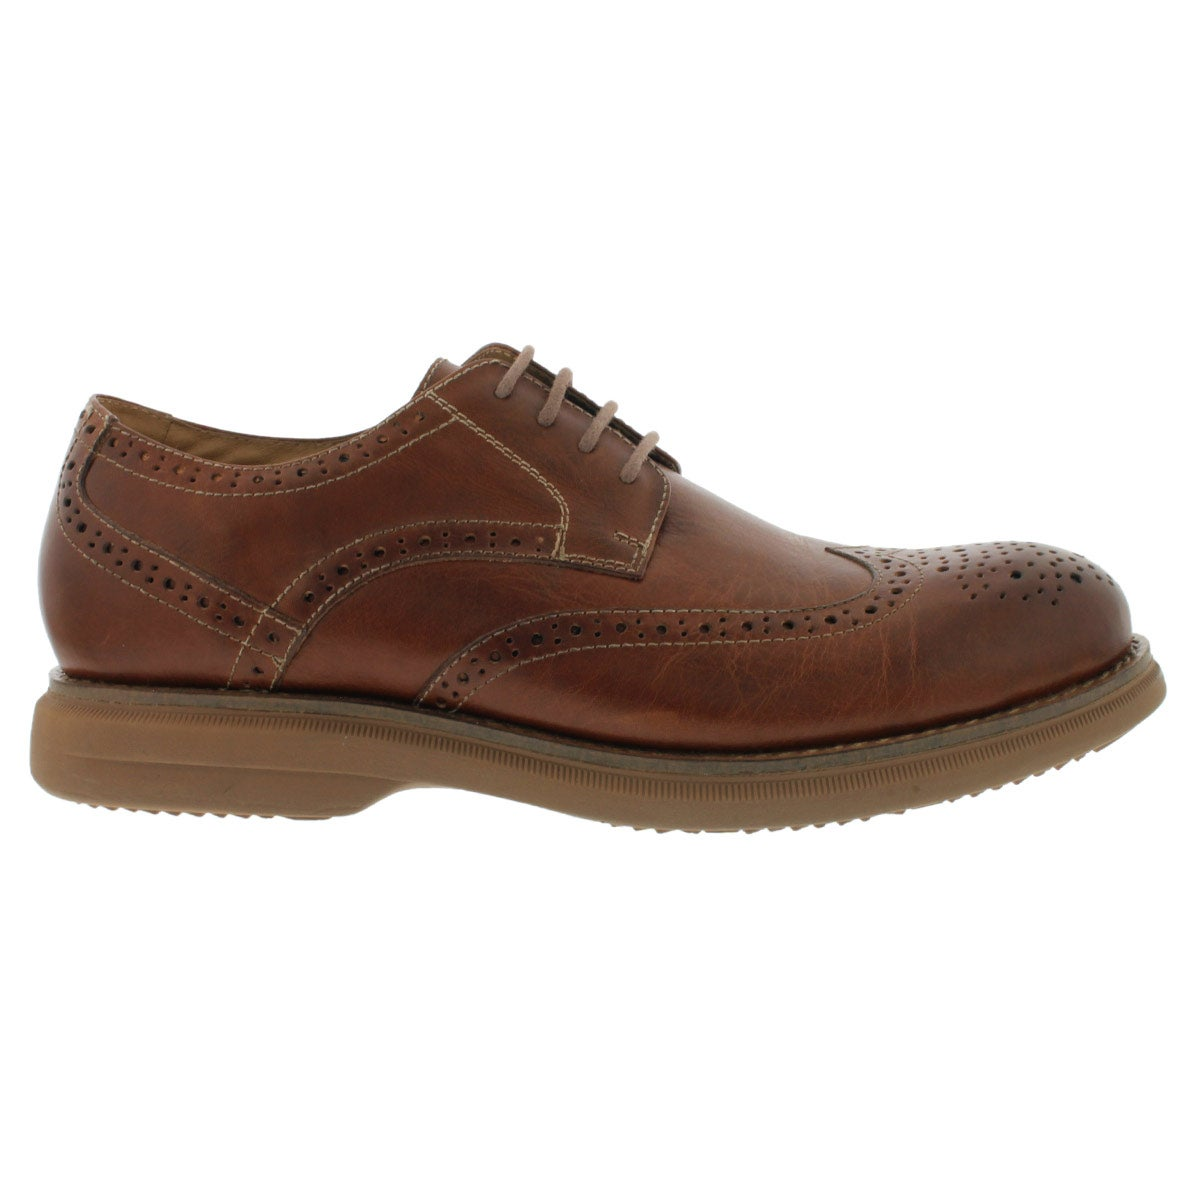 Mns Motion cognac 4-eye dress shoe